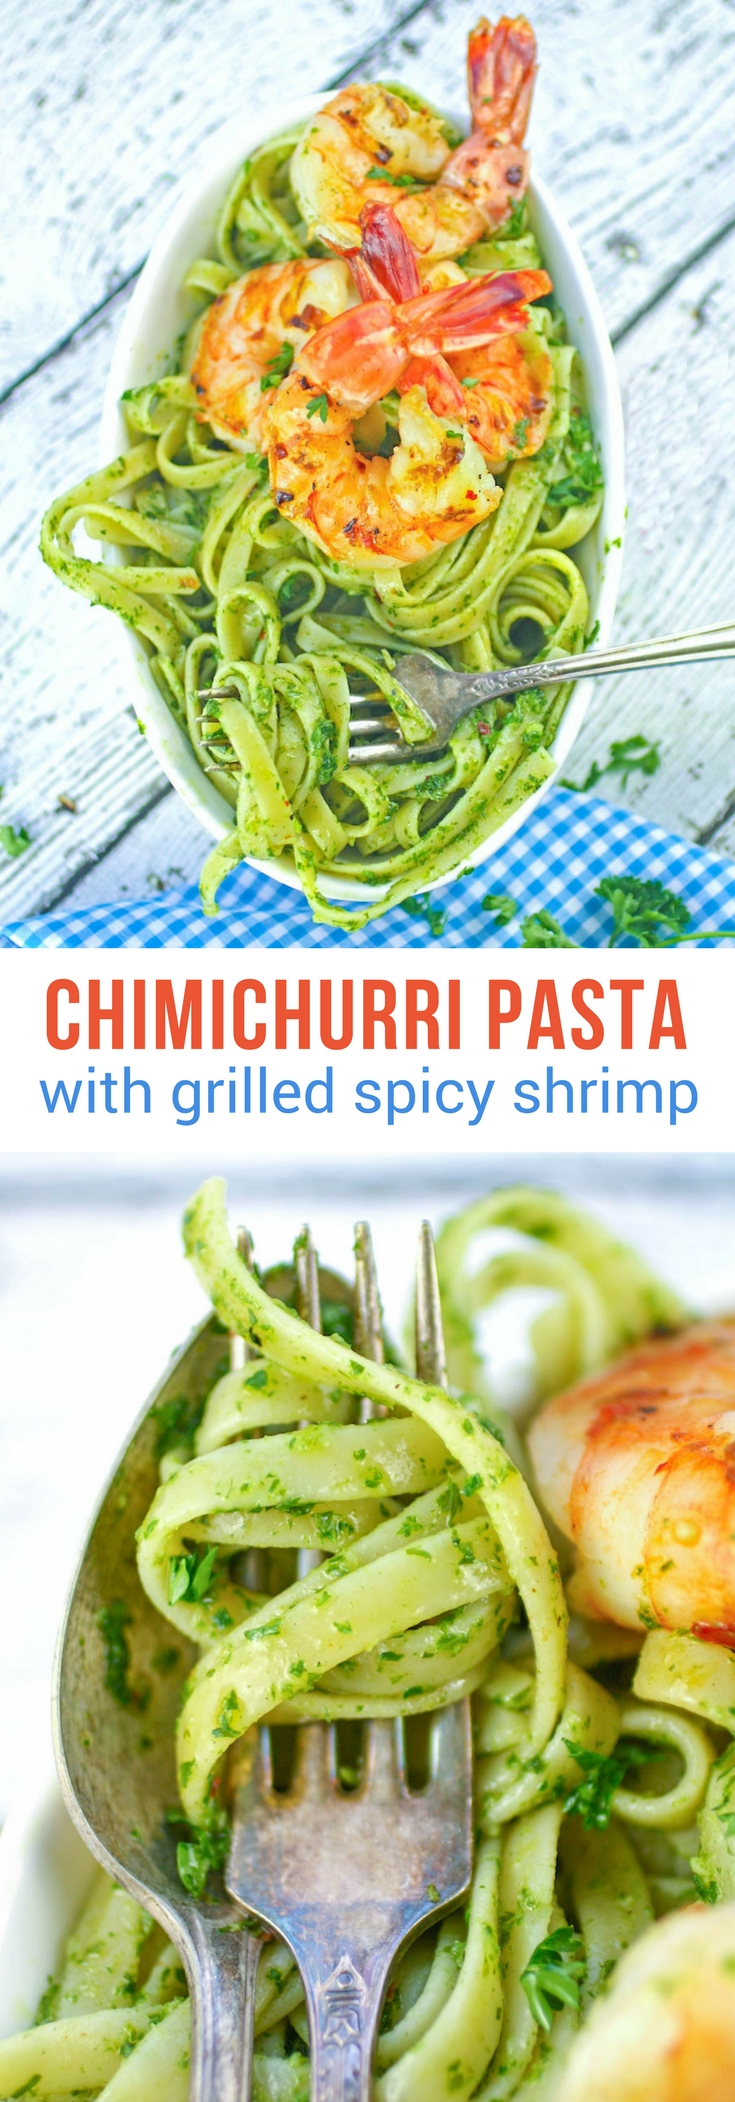 Chimichurri Pasta with Grilled Spicy Shrimp is easy to make and so flavorful. Chimichurri Pasta with Grilled Spicy Shrimp is the perfect dish to help welcome spring, and to serve during Lent, too.